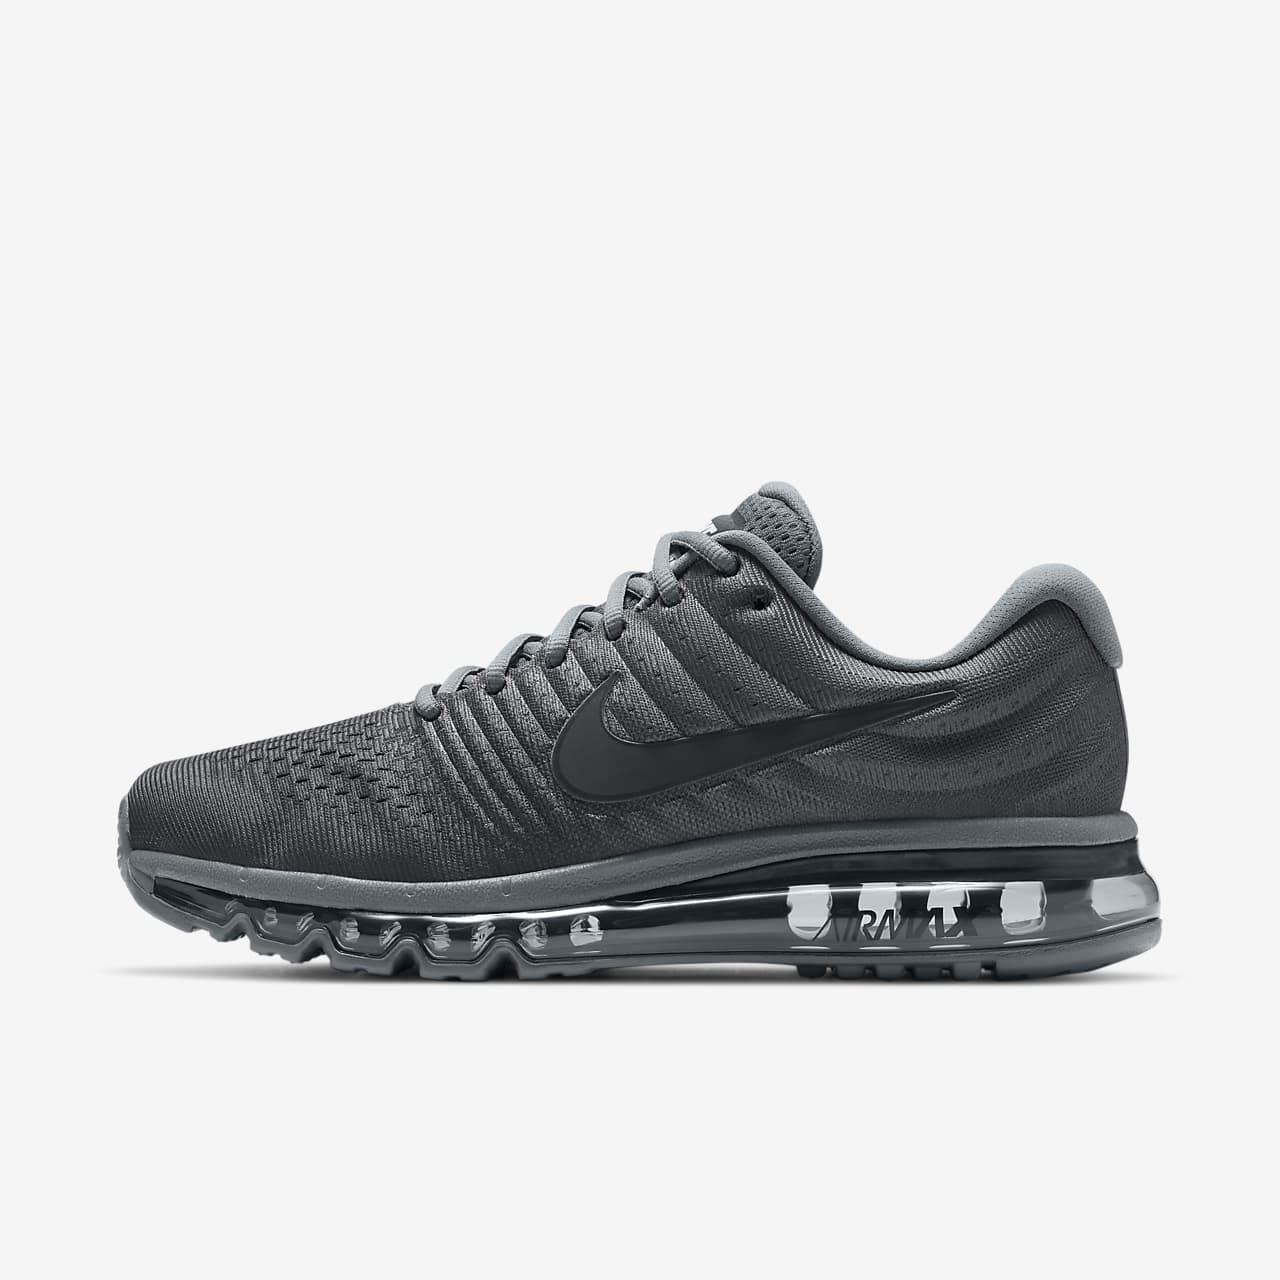 5f719c94e0 Nike Air Max 2017 Men s Shoe. Nike.com